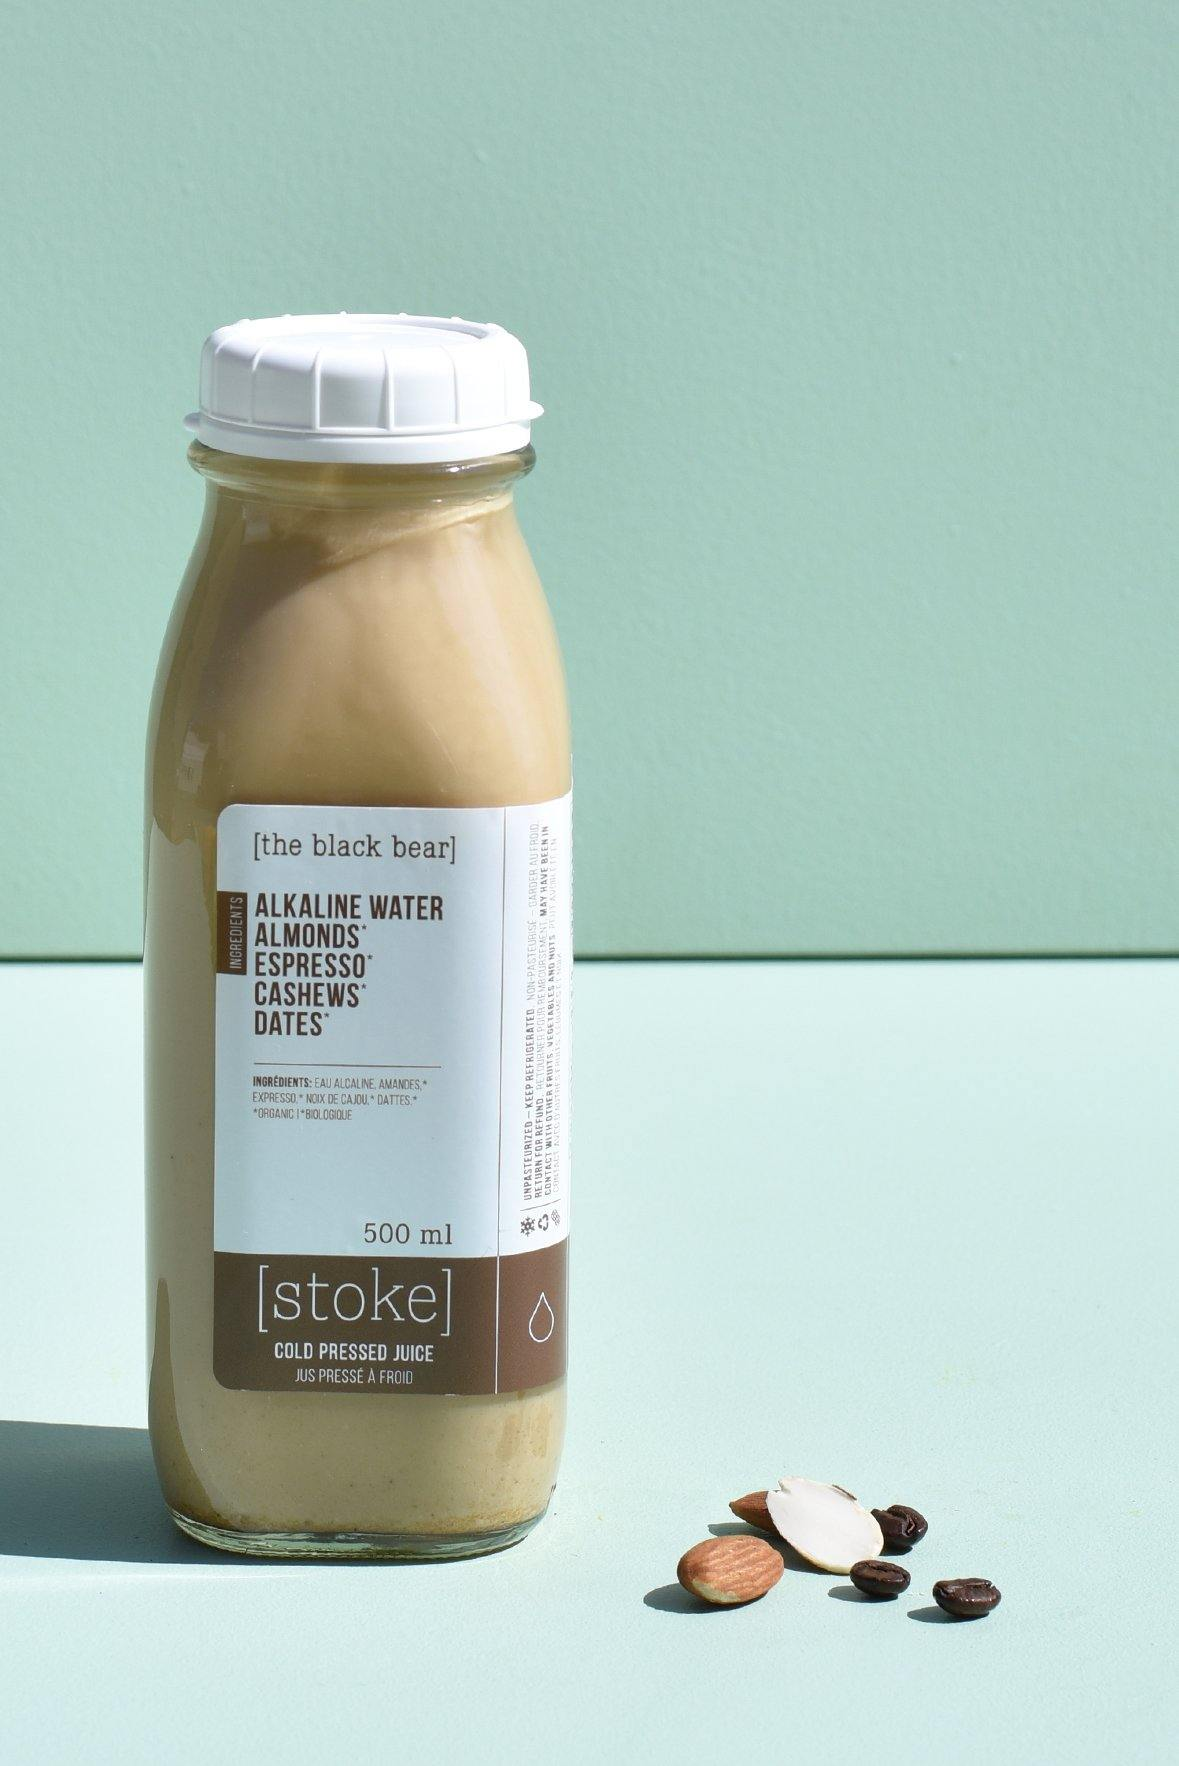 [ the black bear ] cold pressed juice - nut milk - with almonds and cashews